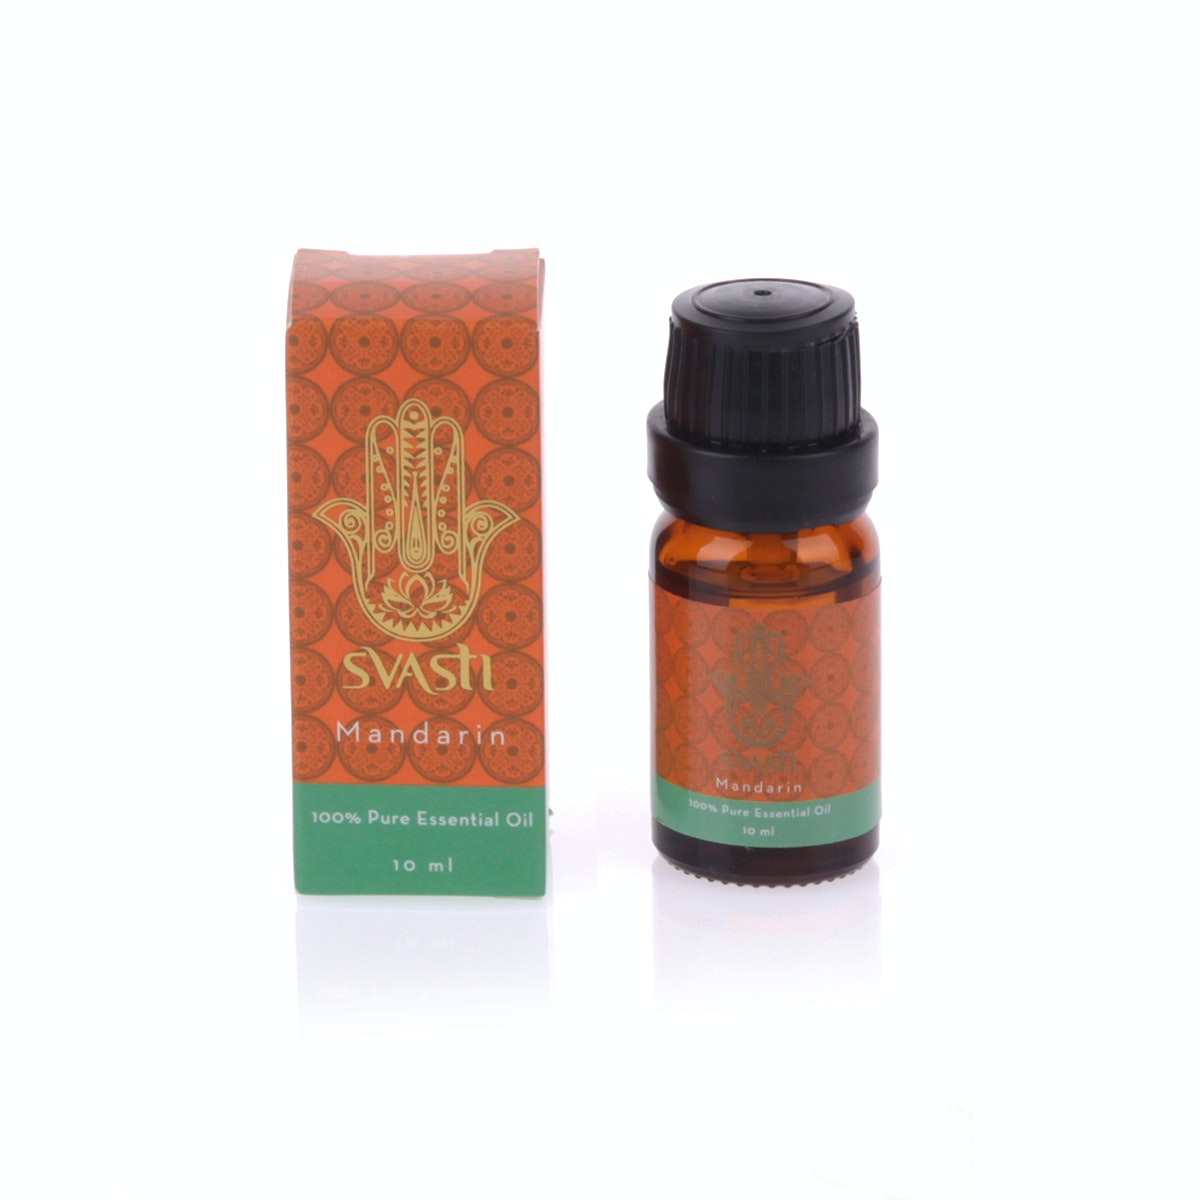 SVASTI Essential Oil Mandarin